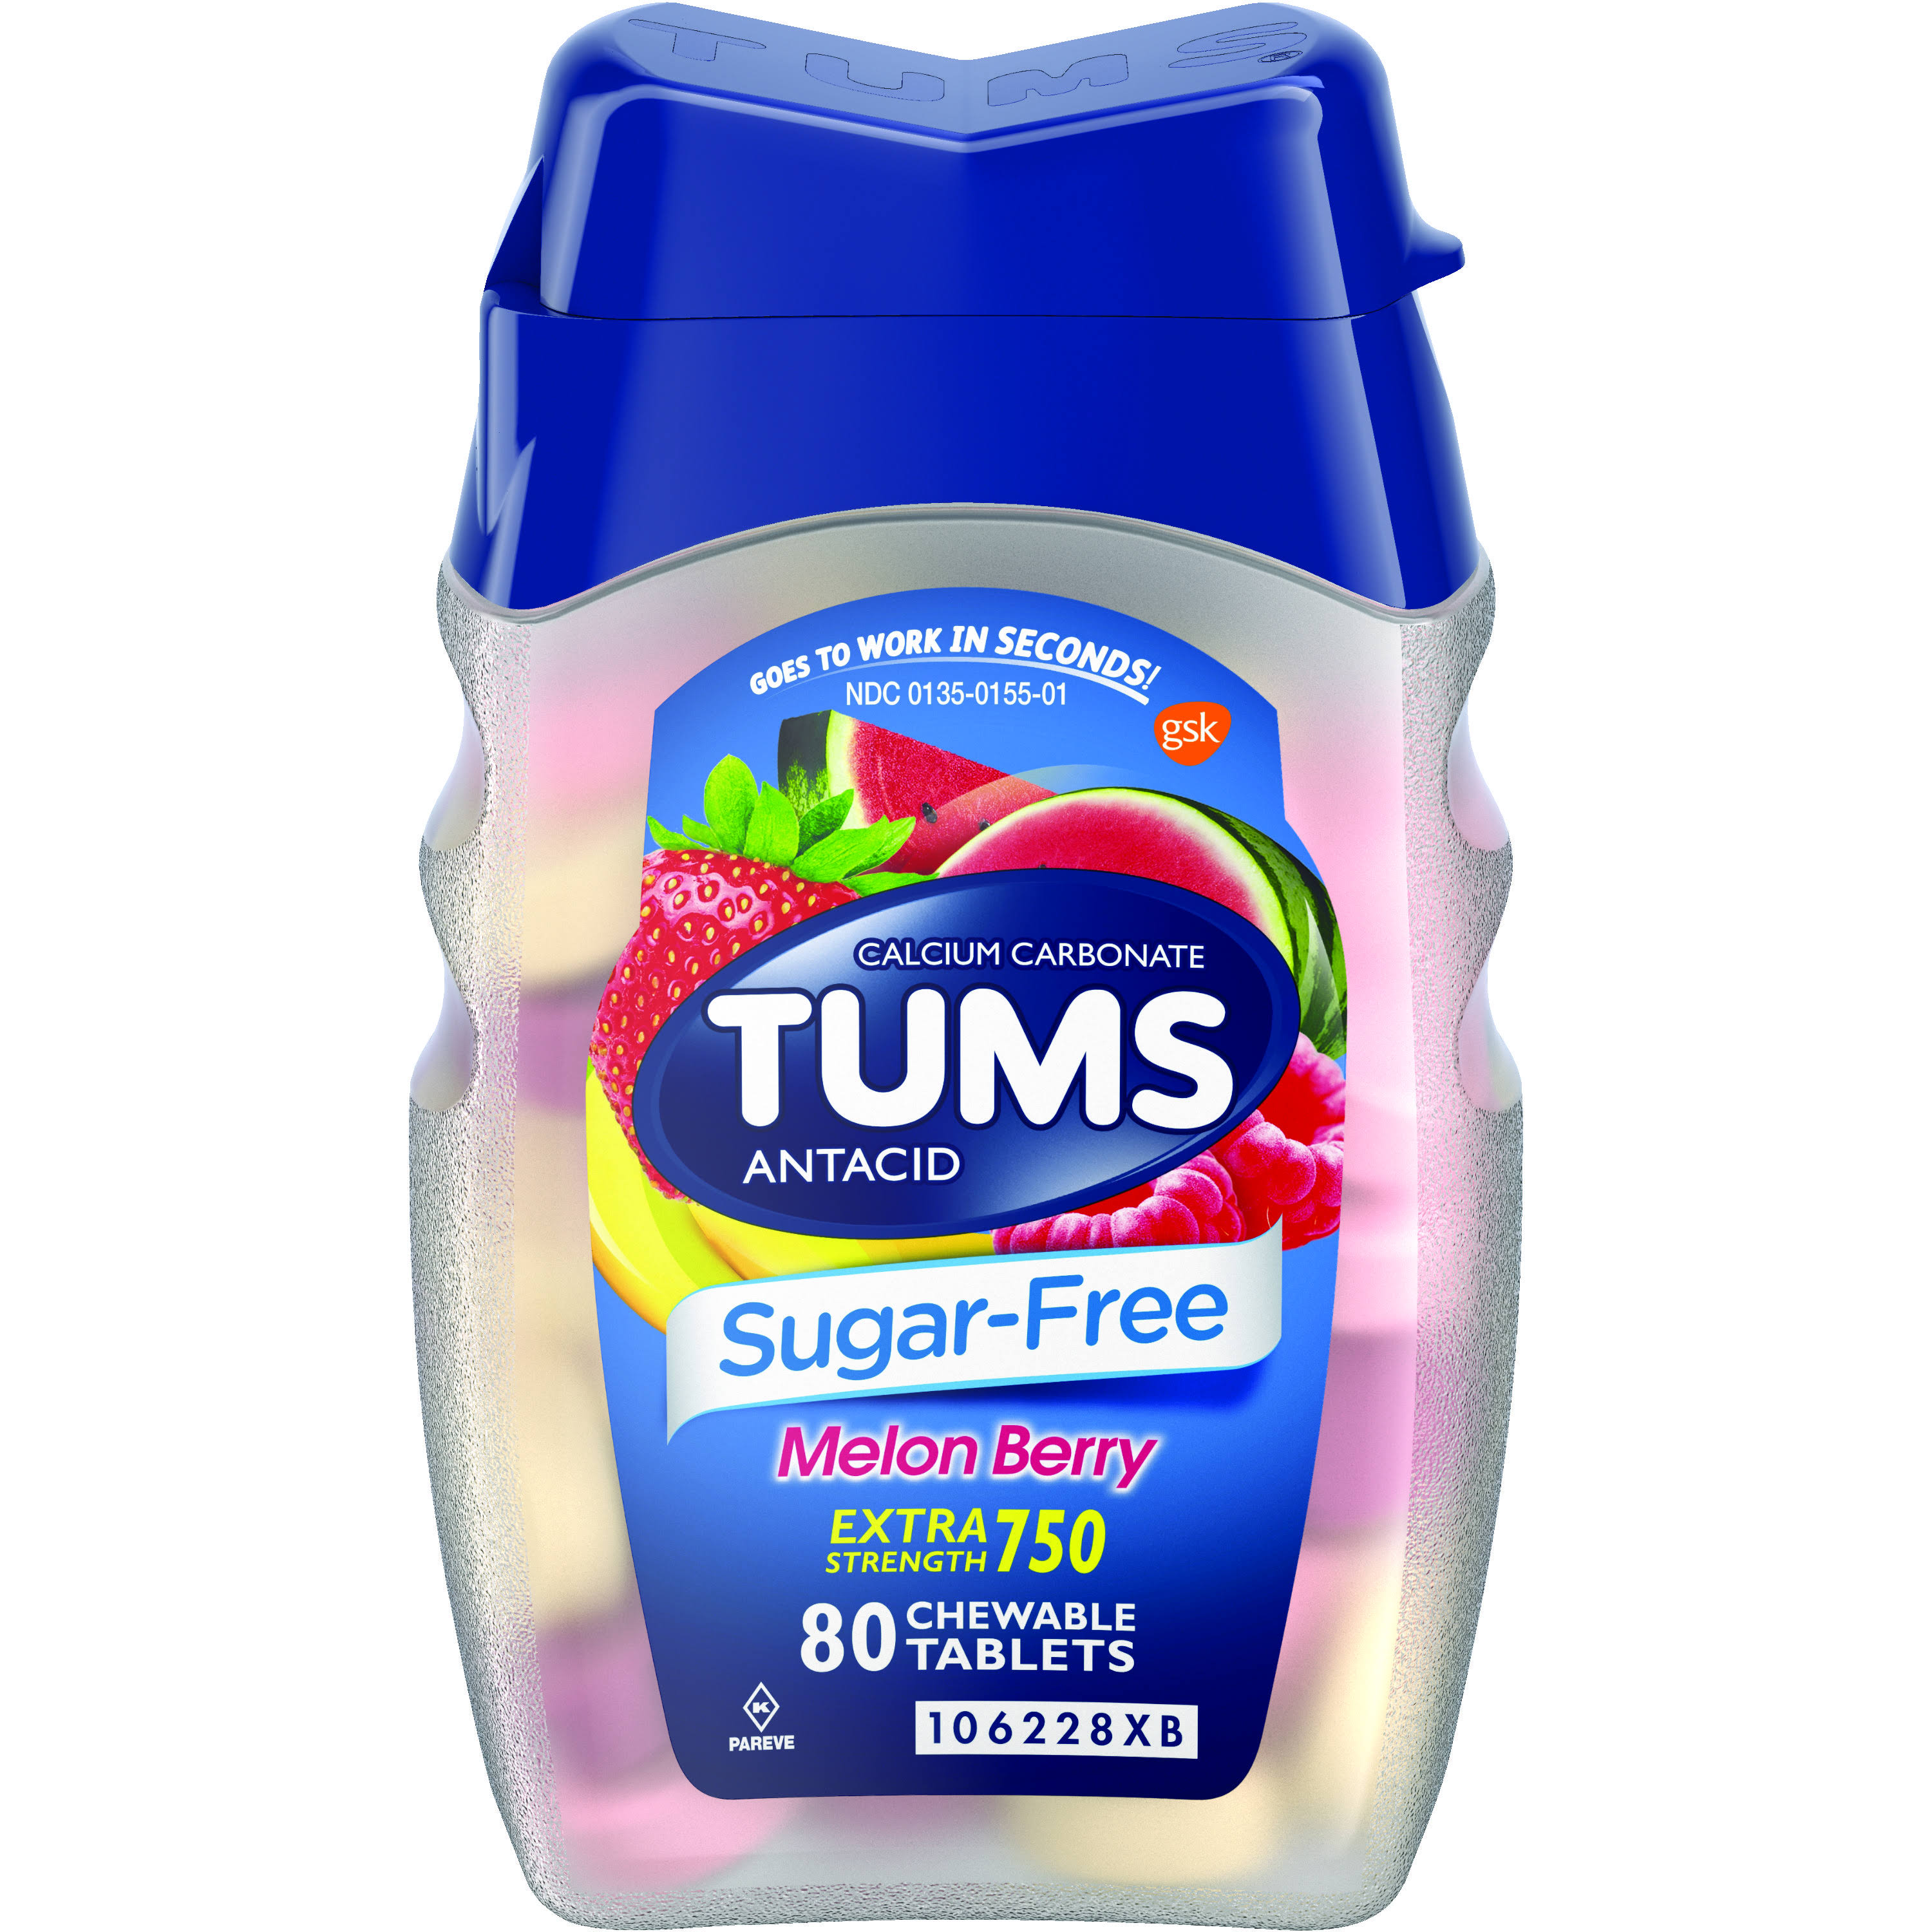 Tums Sugar-Free Heartburn Relief Antacid, Tablets, Melon Berry - 80 count